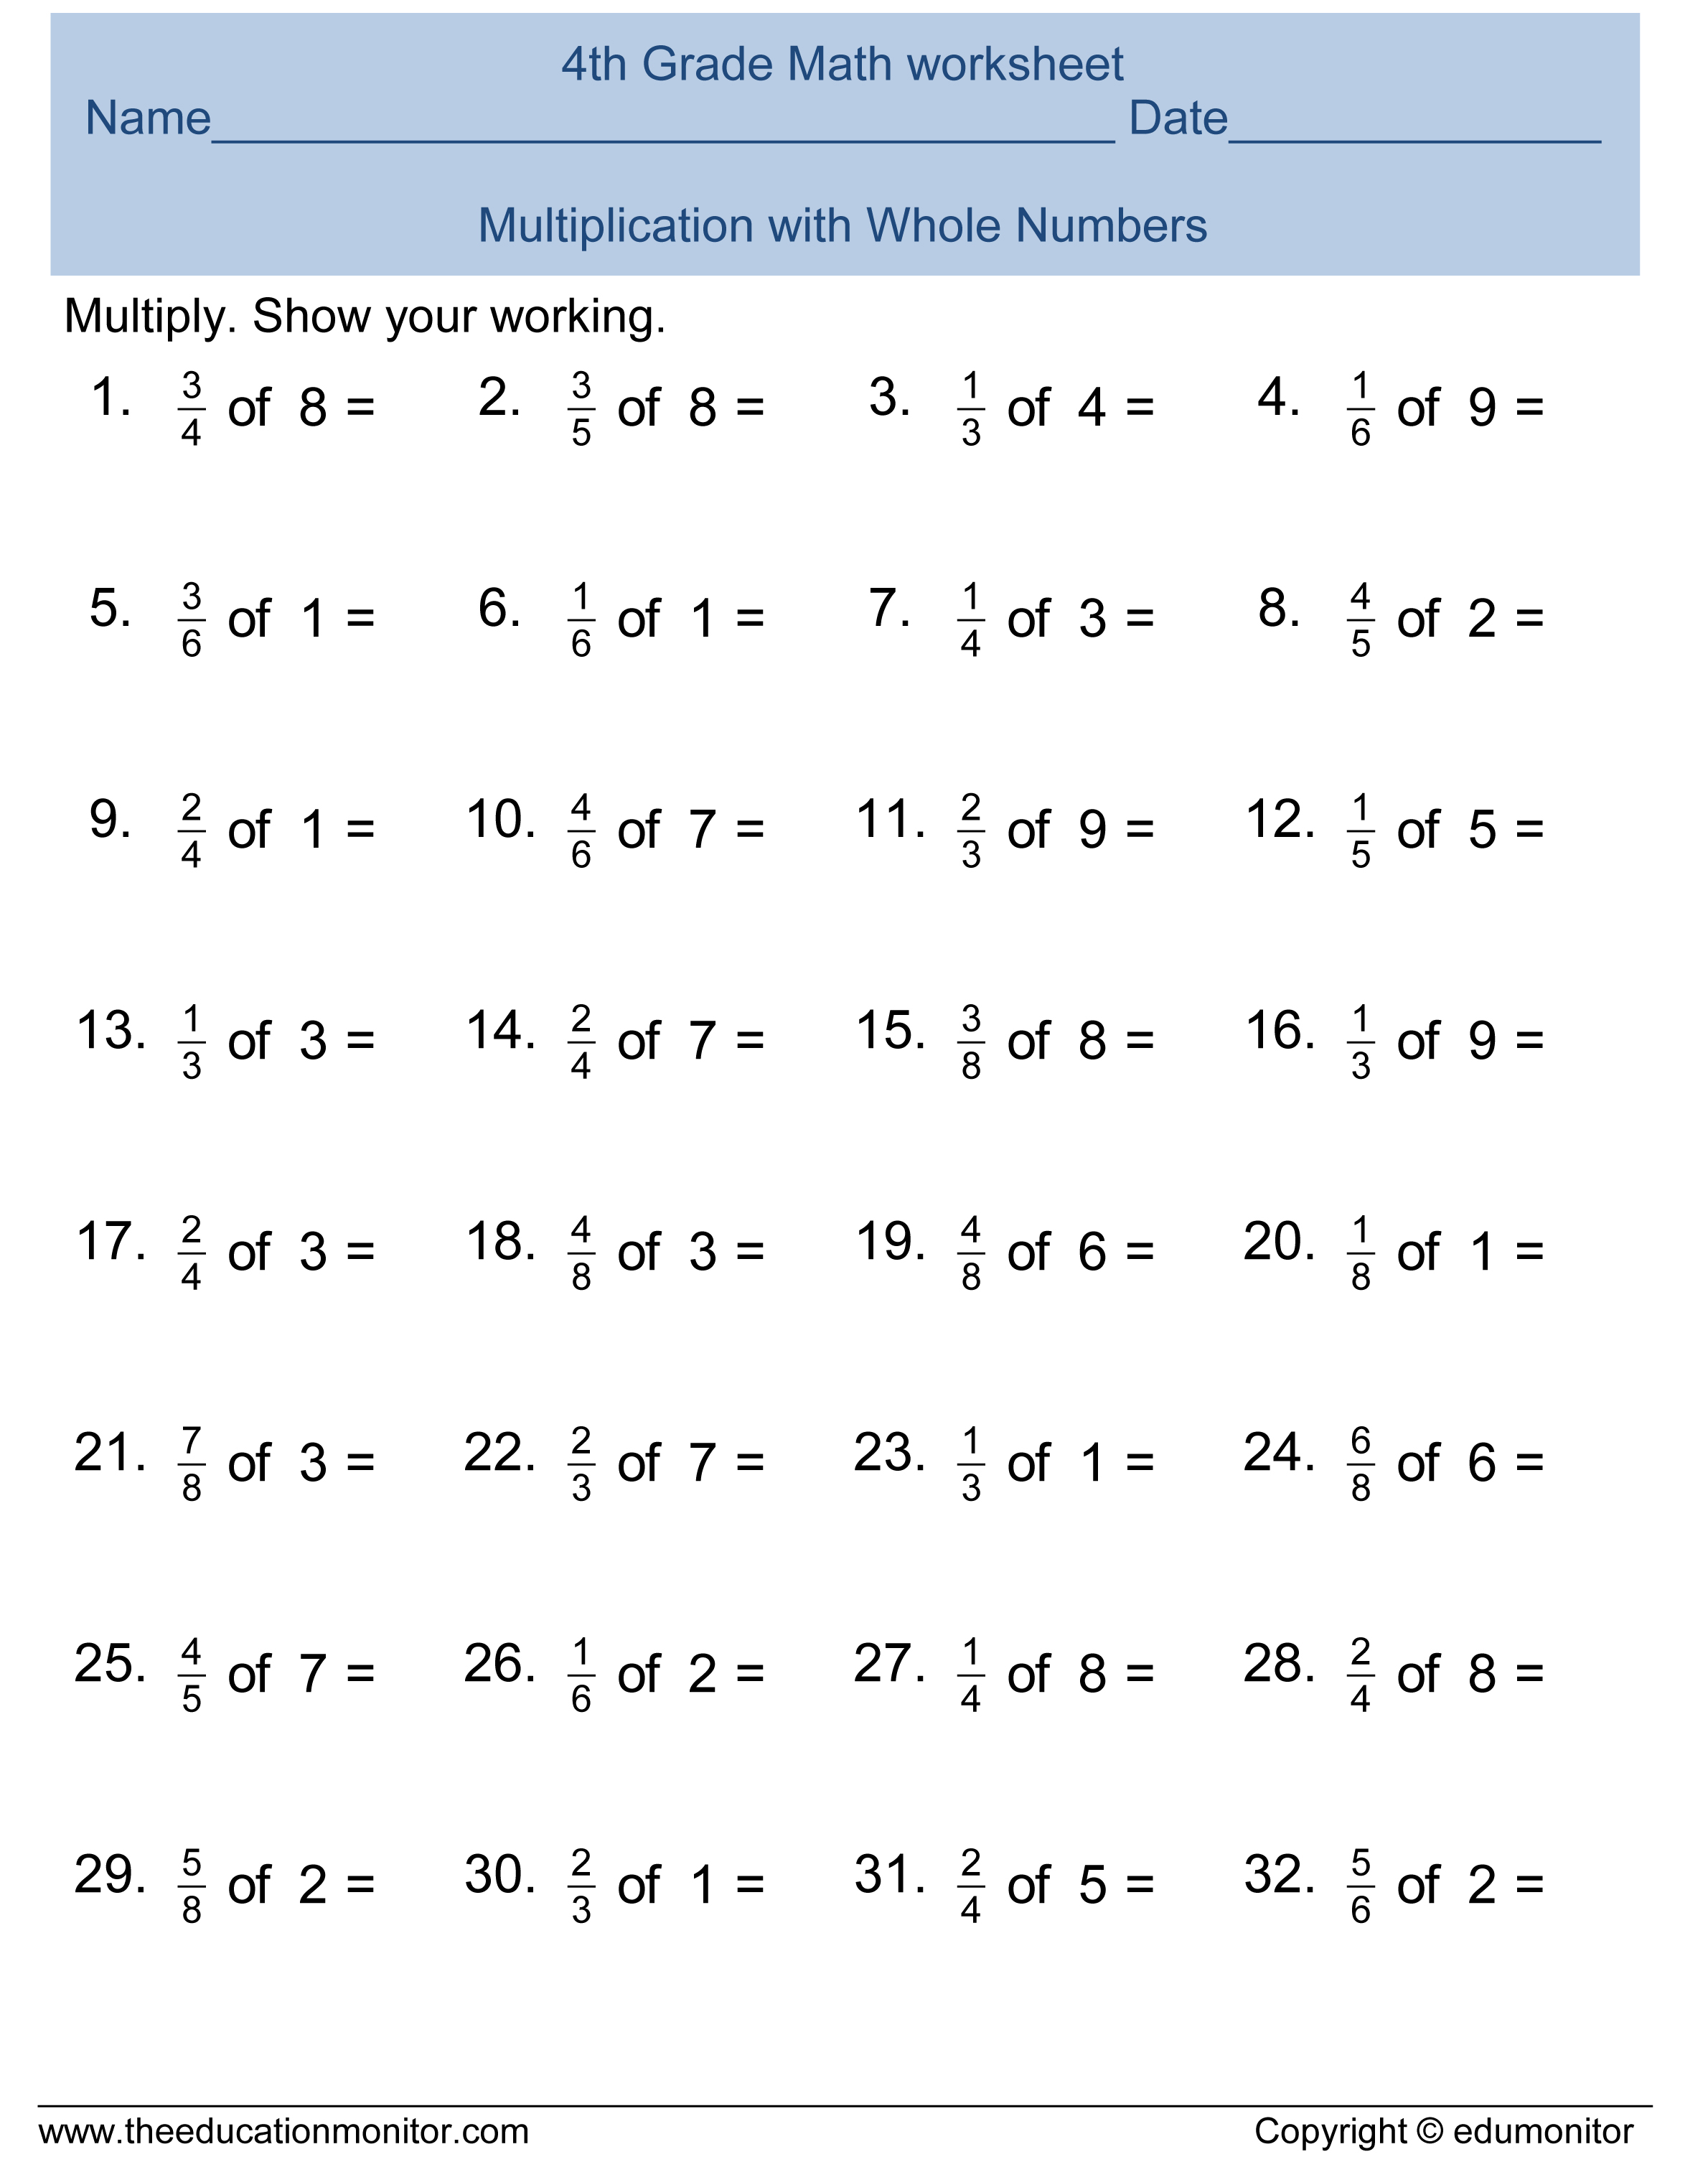 Free Printable Worksheets for 4th Grade – 5th Grade Math Printable Worksheets